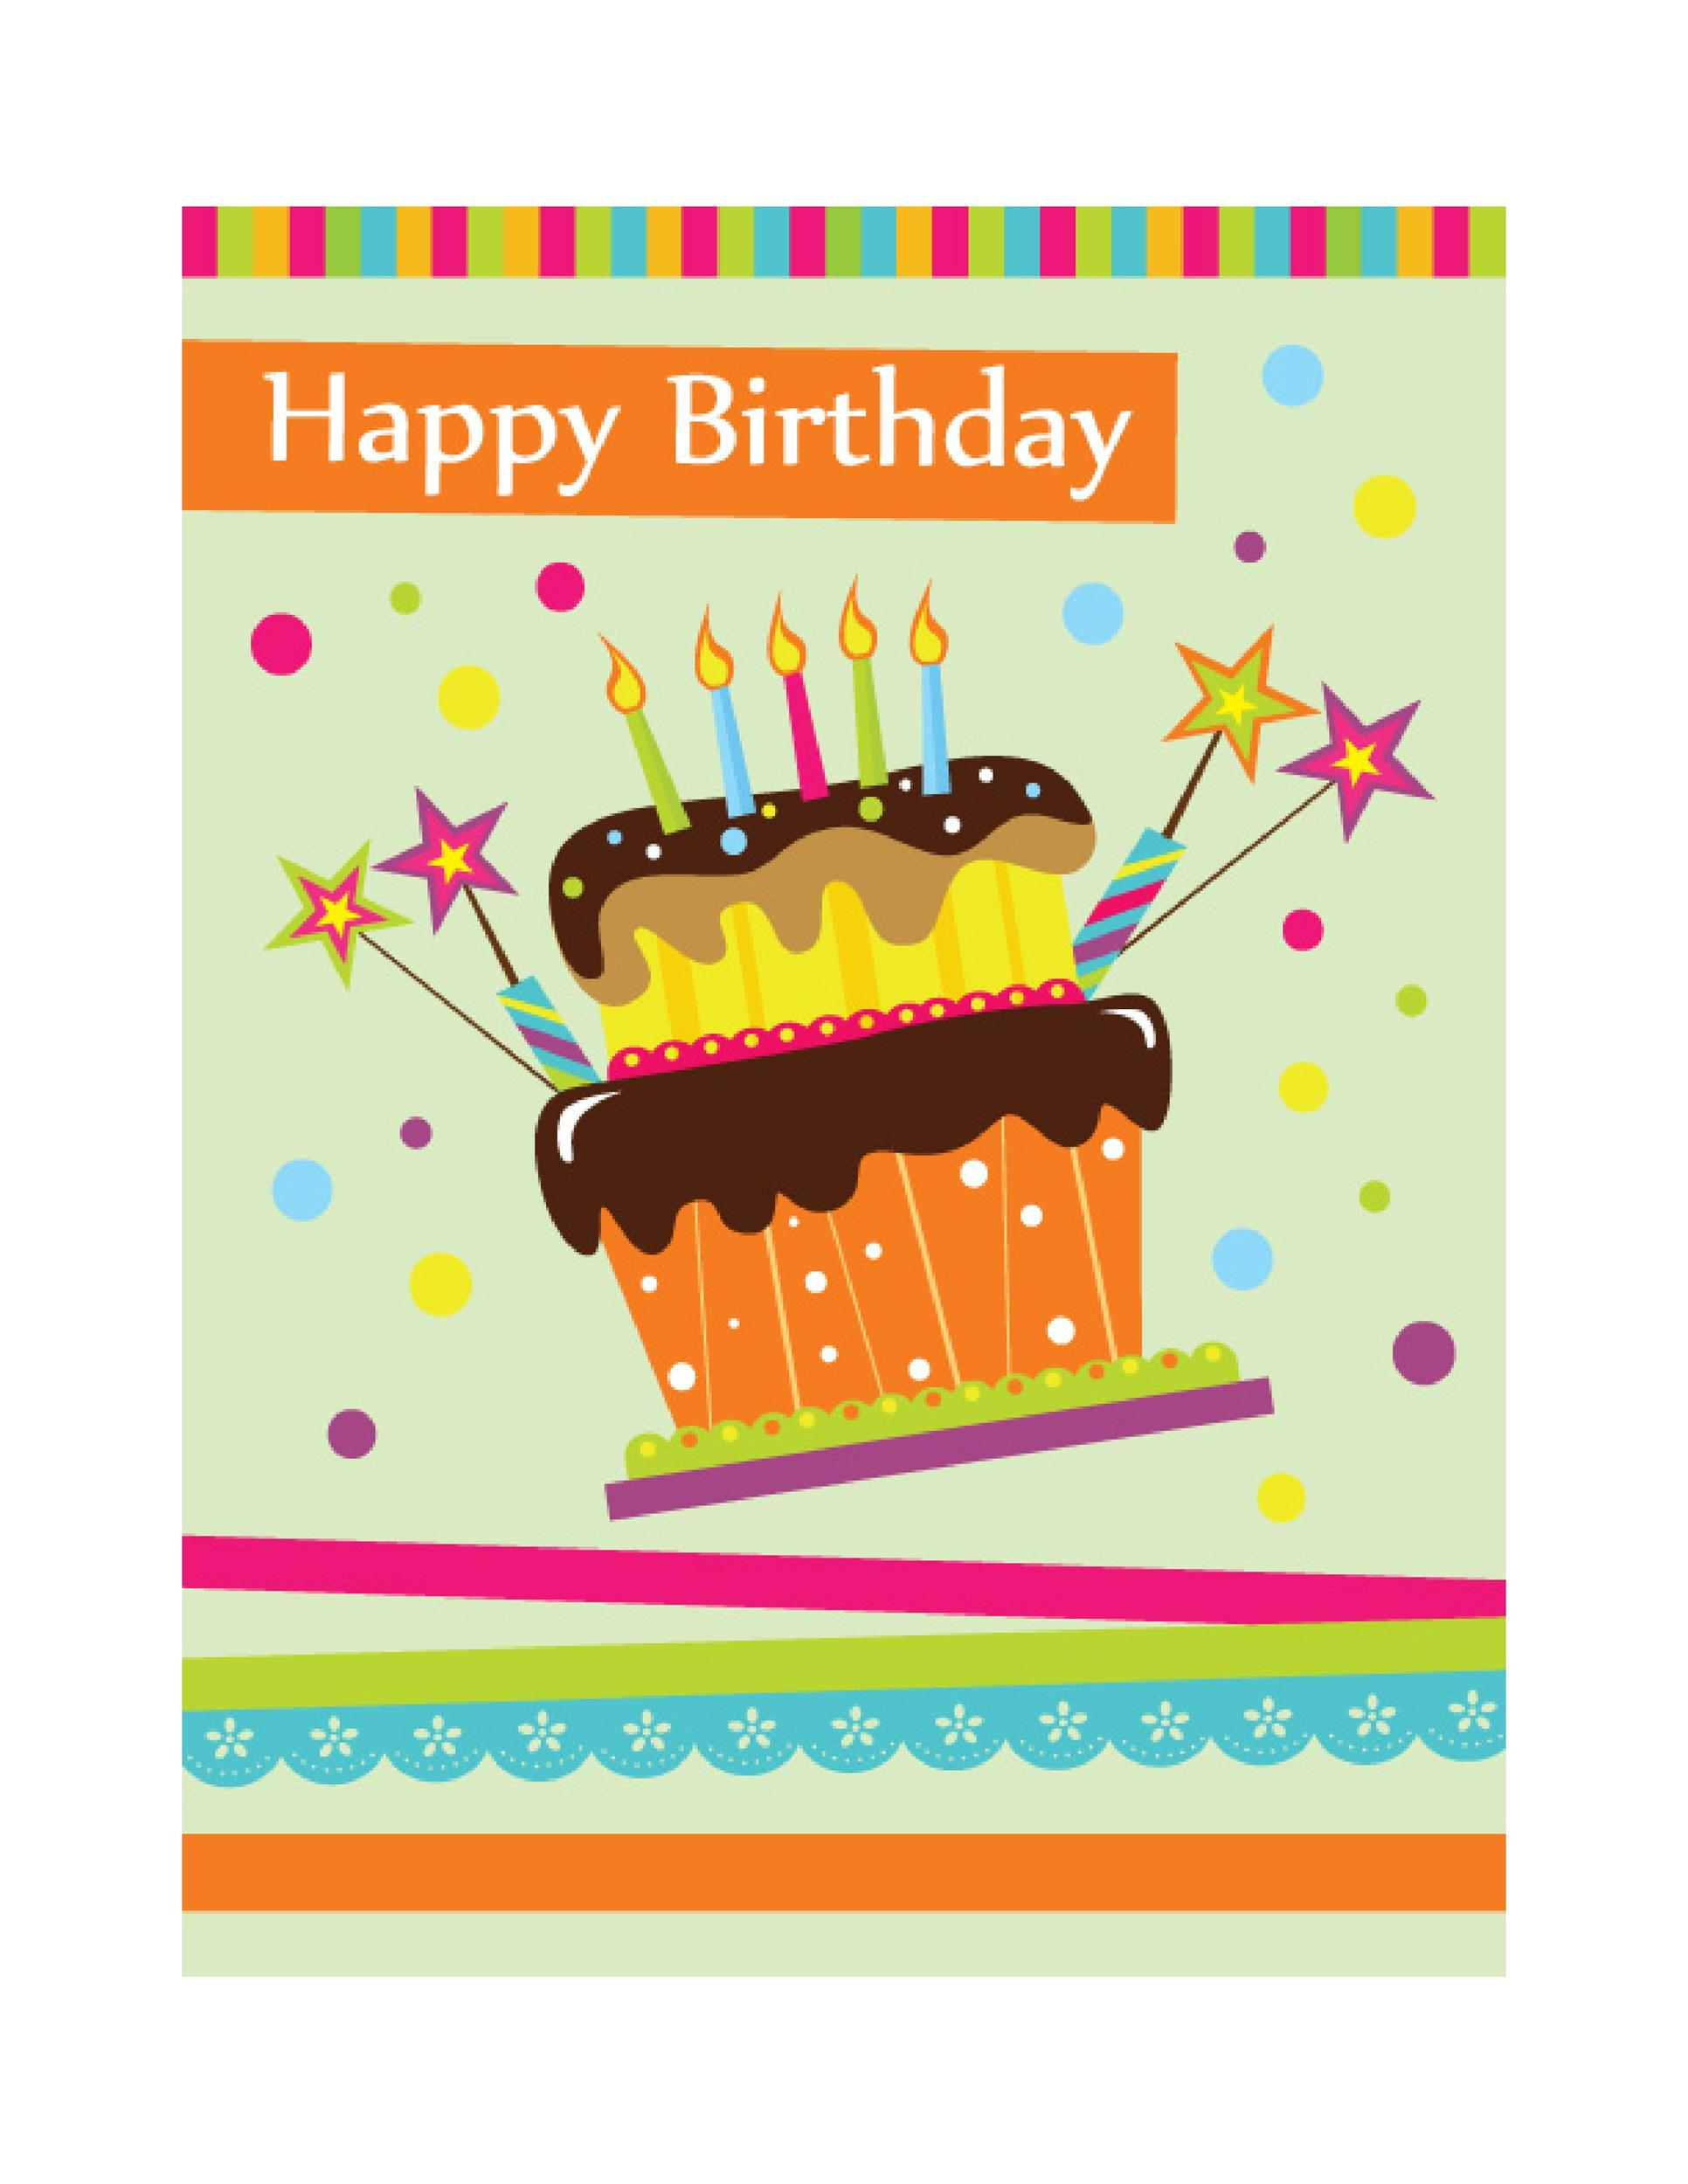 Outstanding 40 Free Birthday Card Templates Templatelab Personalised Birthday Cards Paralily Jamesorg